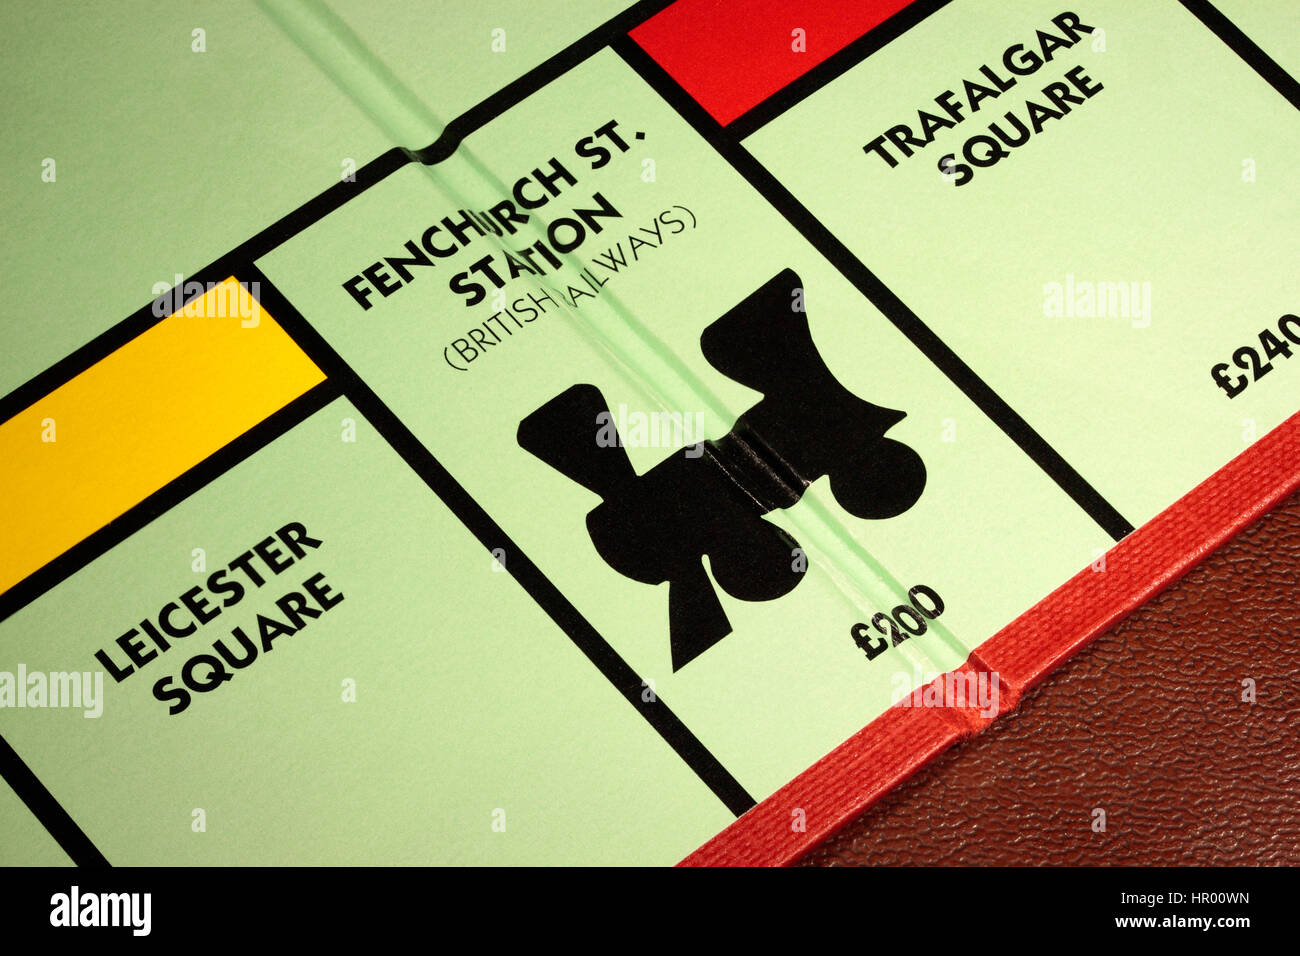 Monopoly board game Fenchurch St. Station British Railways £200 with Leicester Square to the left and Trafalgar - Stock Image